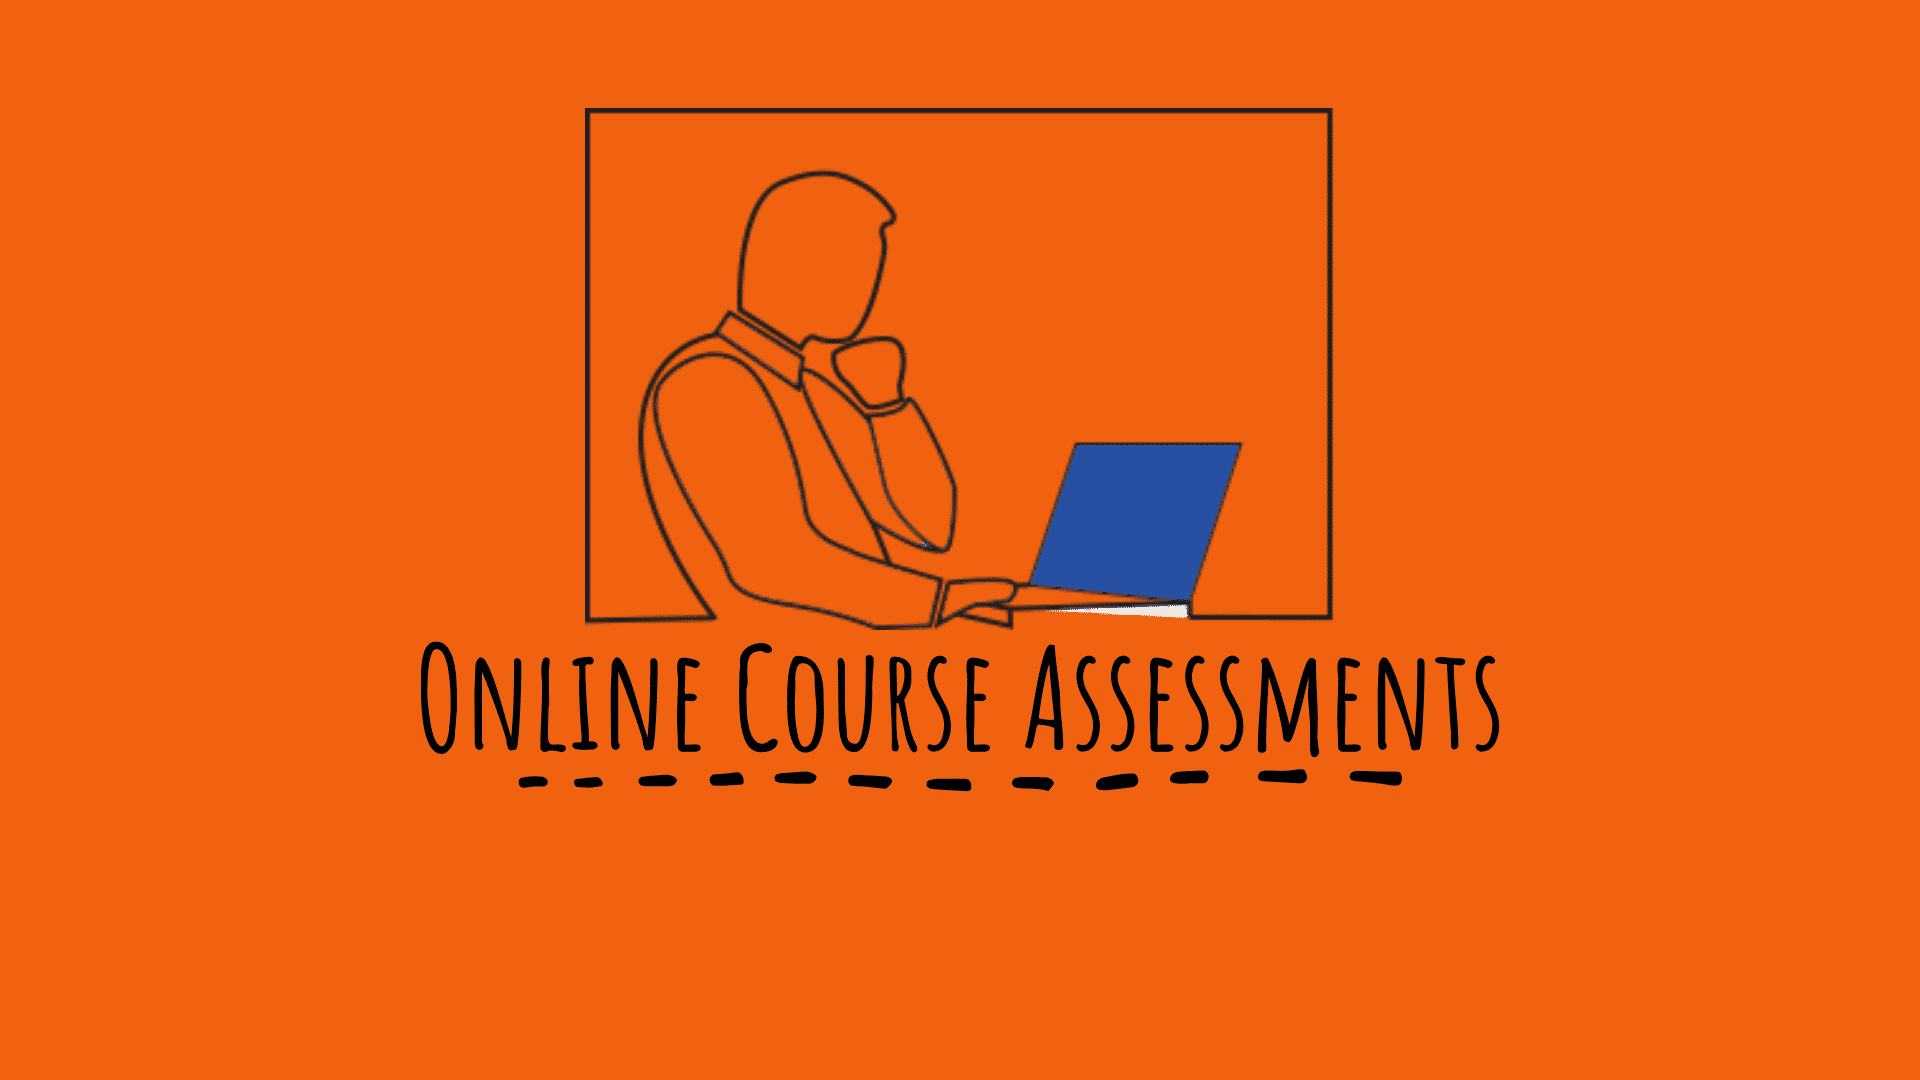 Online Course Assessments